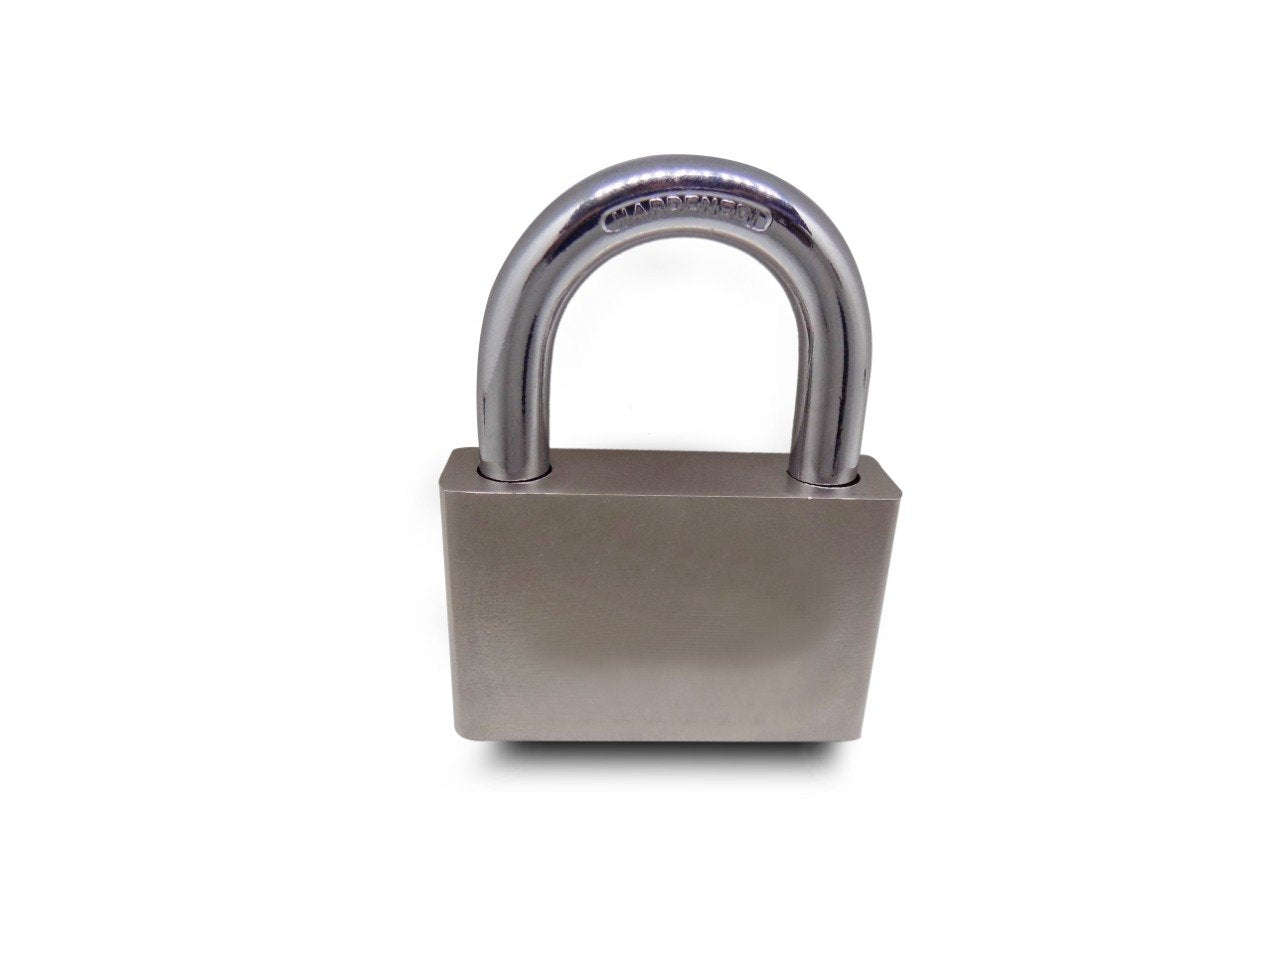 Shackle Padlock With Keys 70 mm